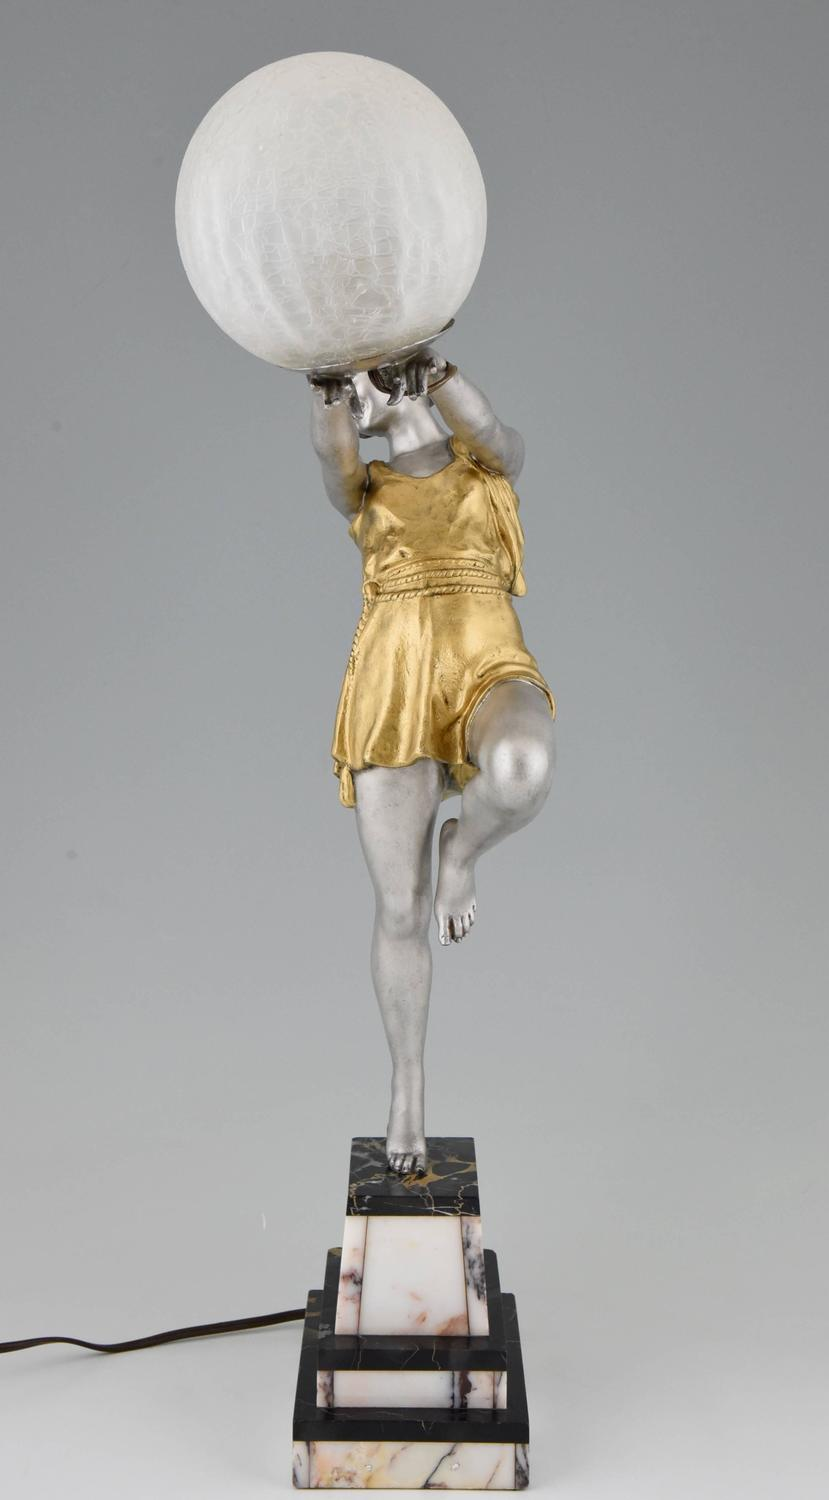 French Art Deco Lamp Lady With Ball By Emile Carlier On